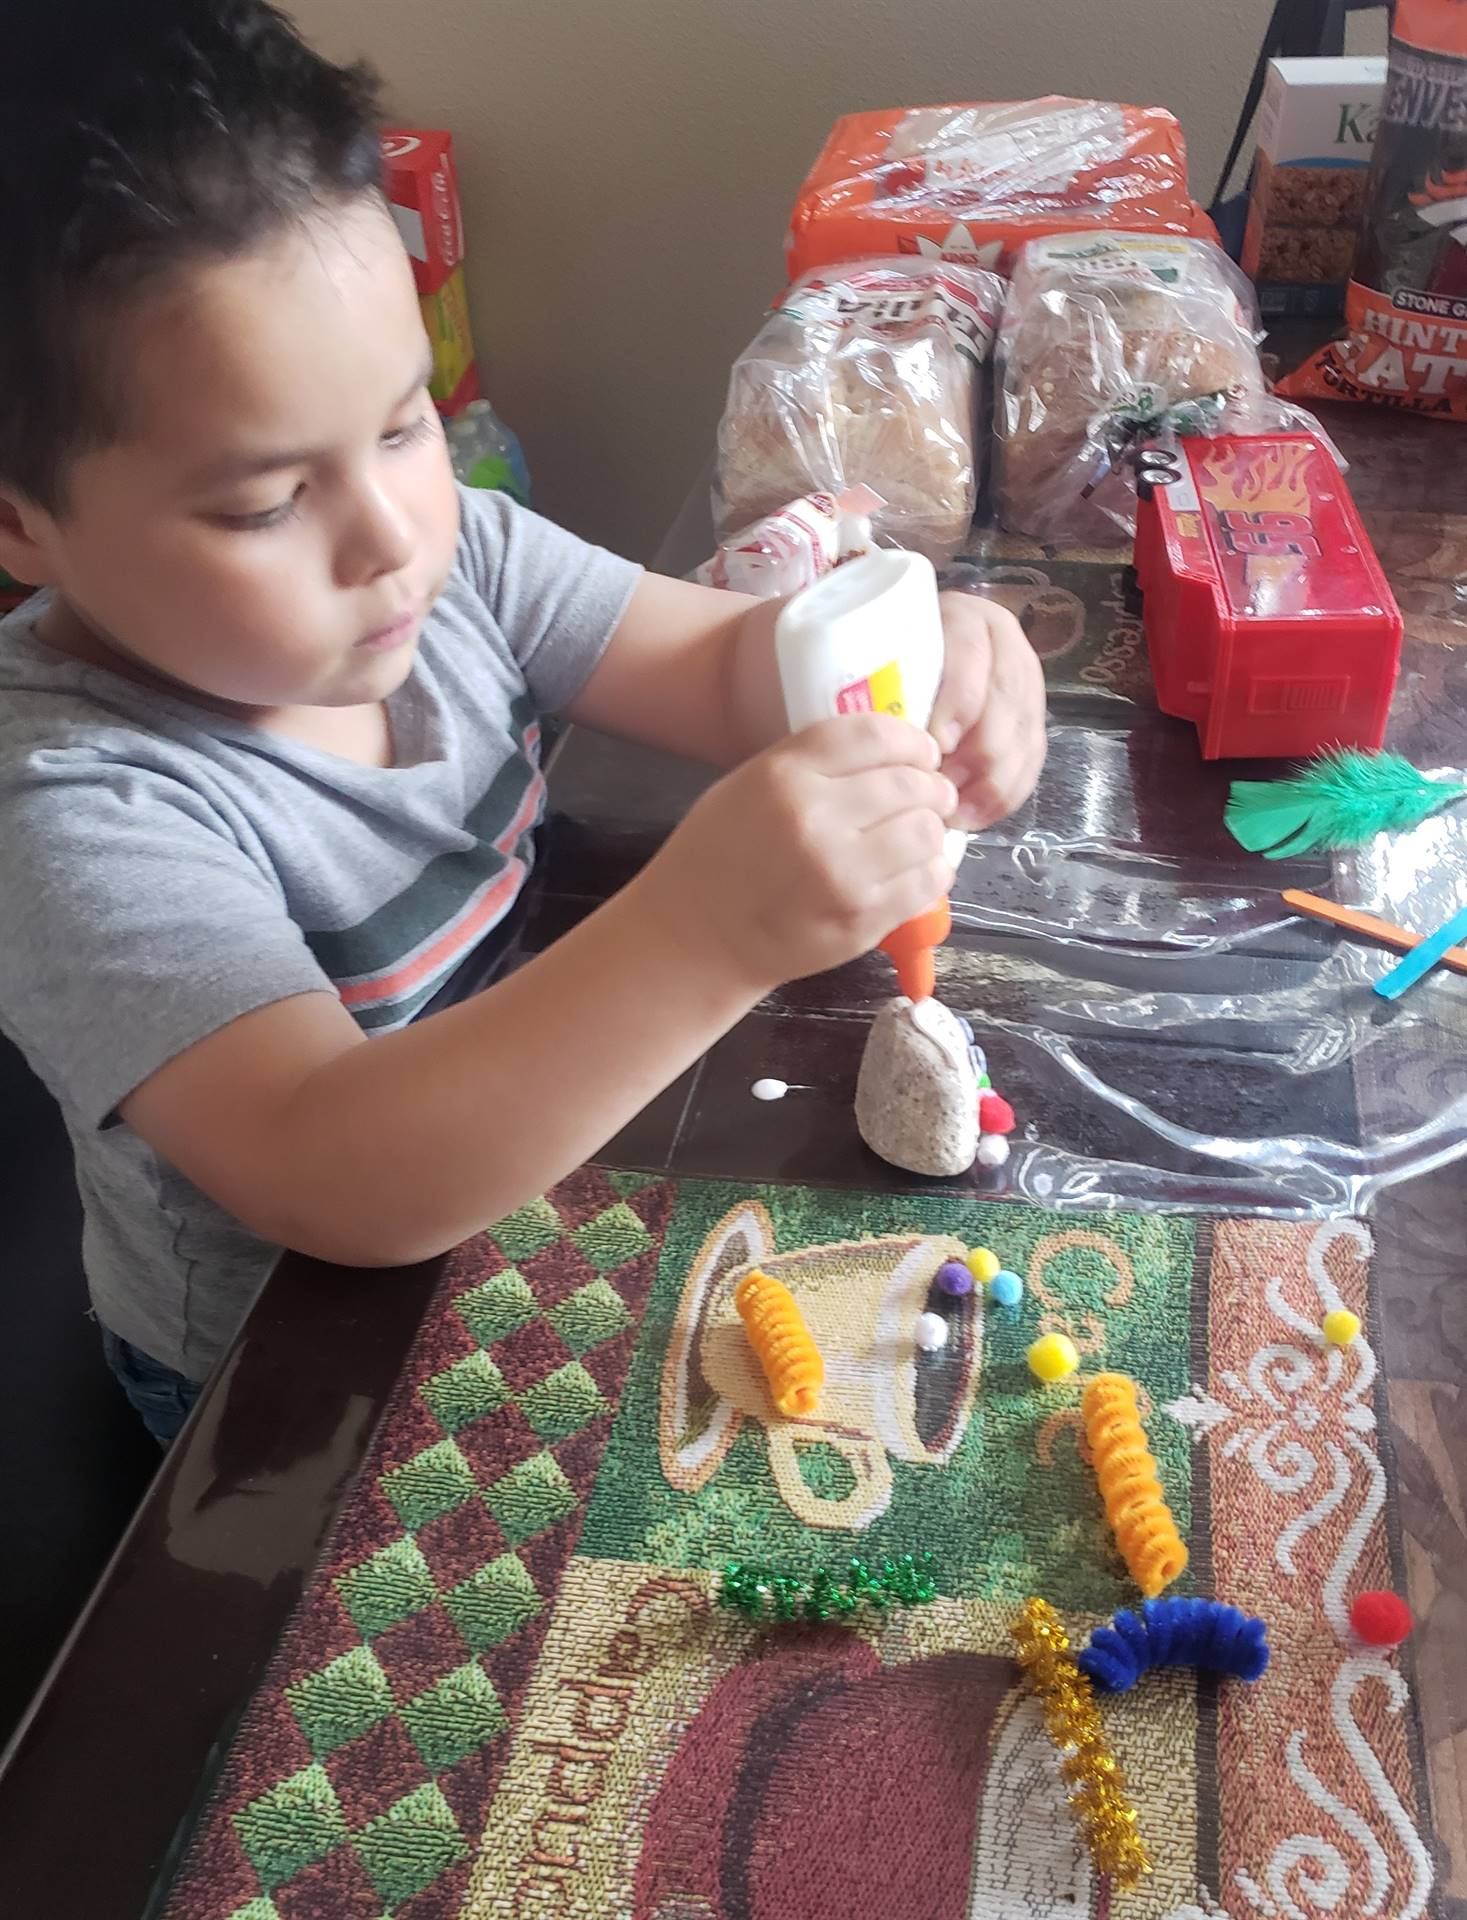 A little boy is gluing his pet rock together.